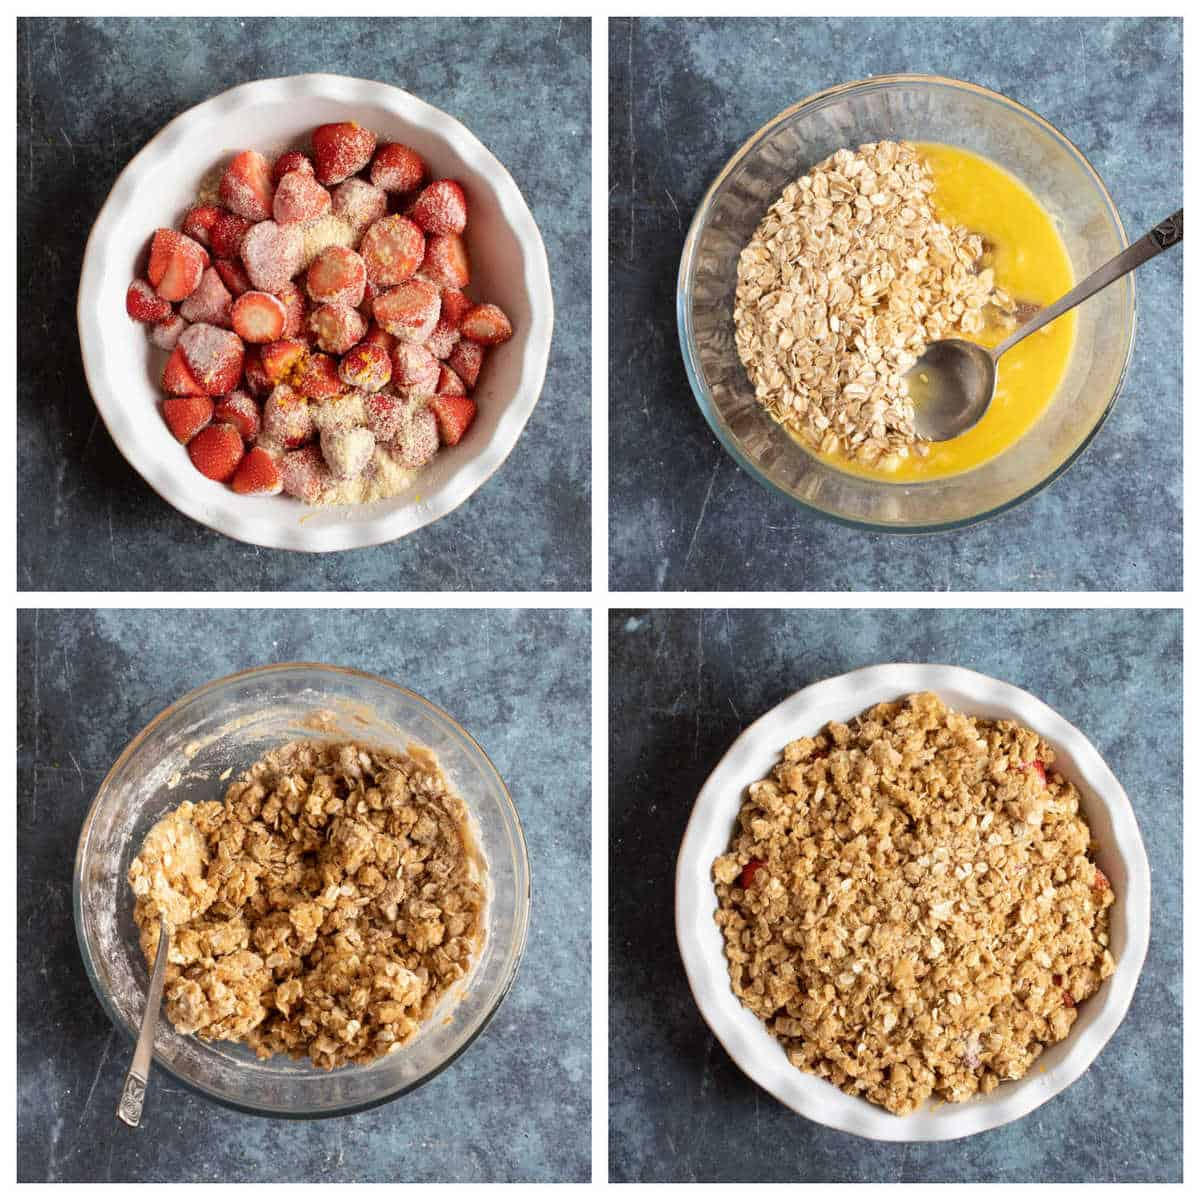 Step by step photo instructions for making the strawberry crumble.